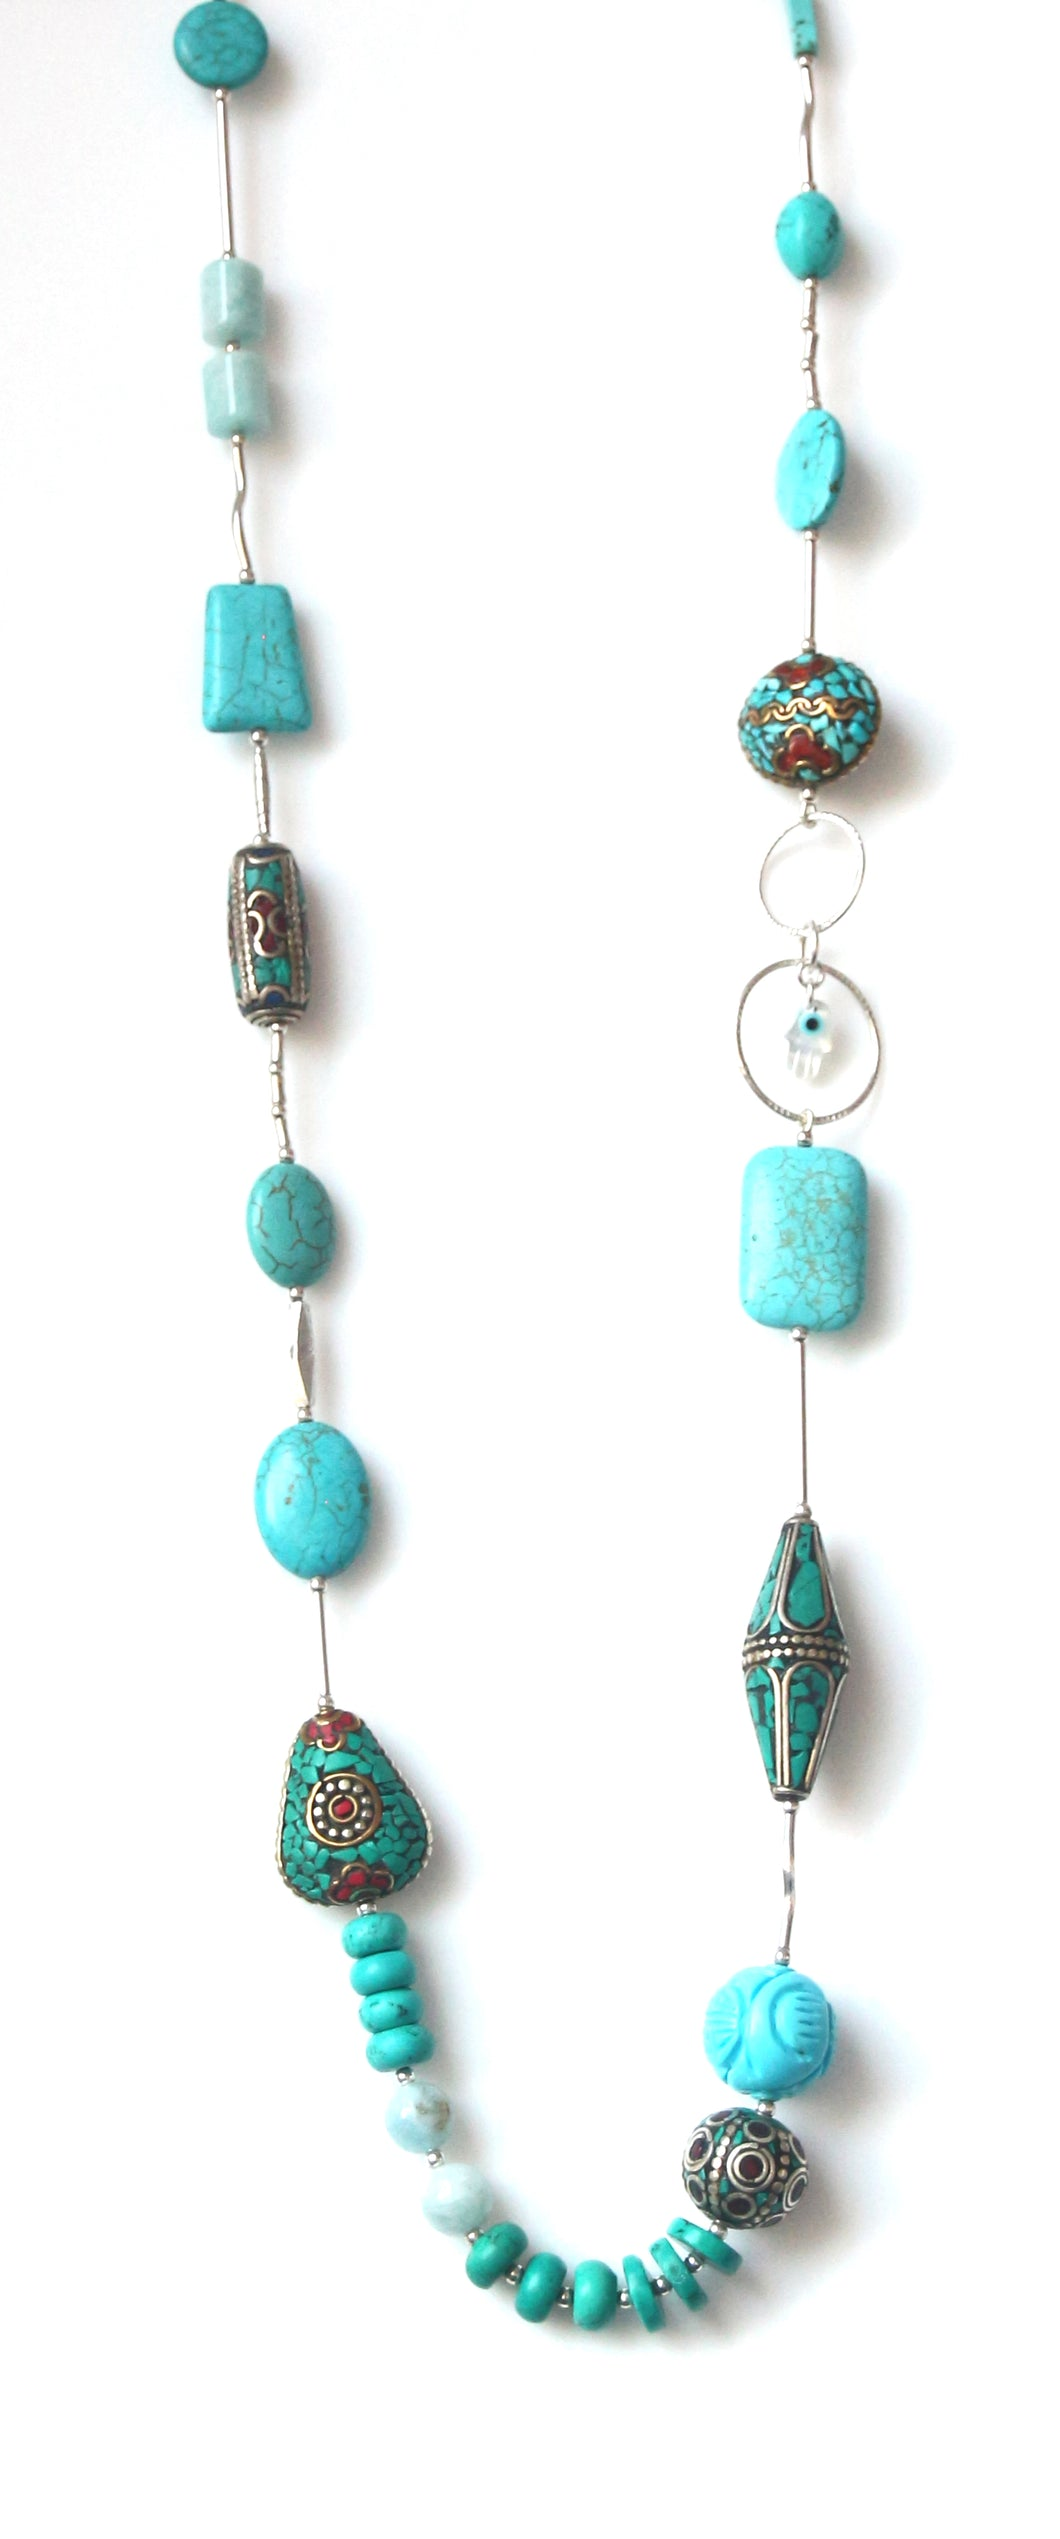 Australian Handmade Long Necklace with Nepalese Beads Amazonite Turquoise and Sterling Silver